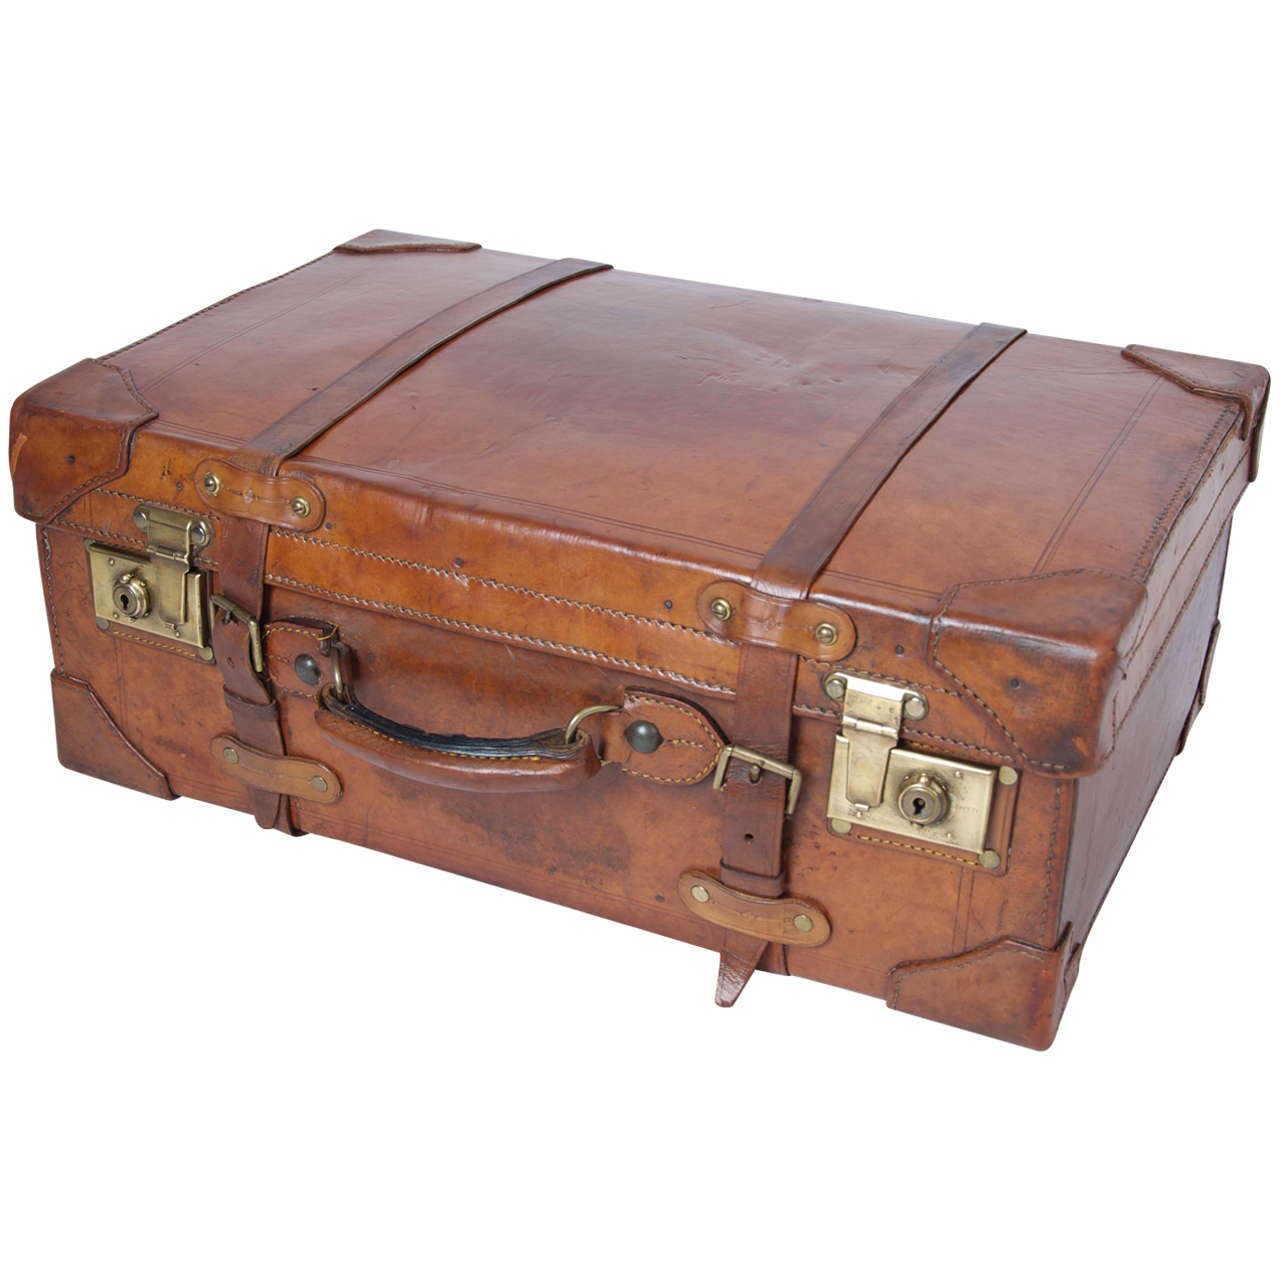 19th C. Leather SUITCASE, English, Very High Quality at 1stdibs